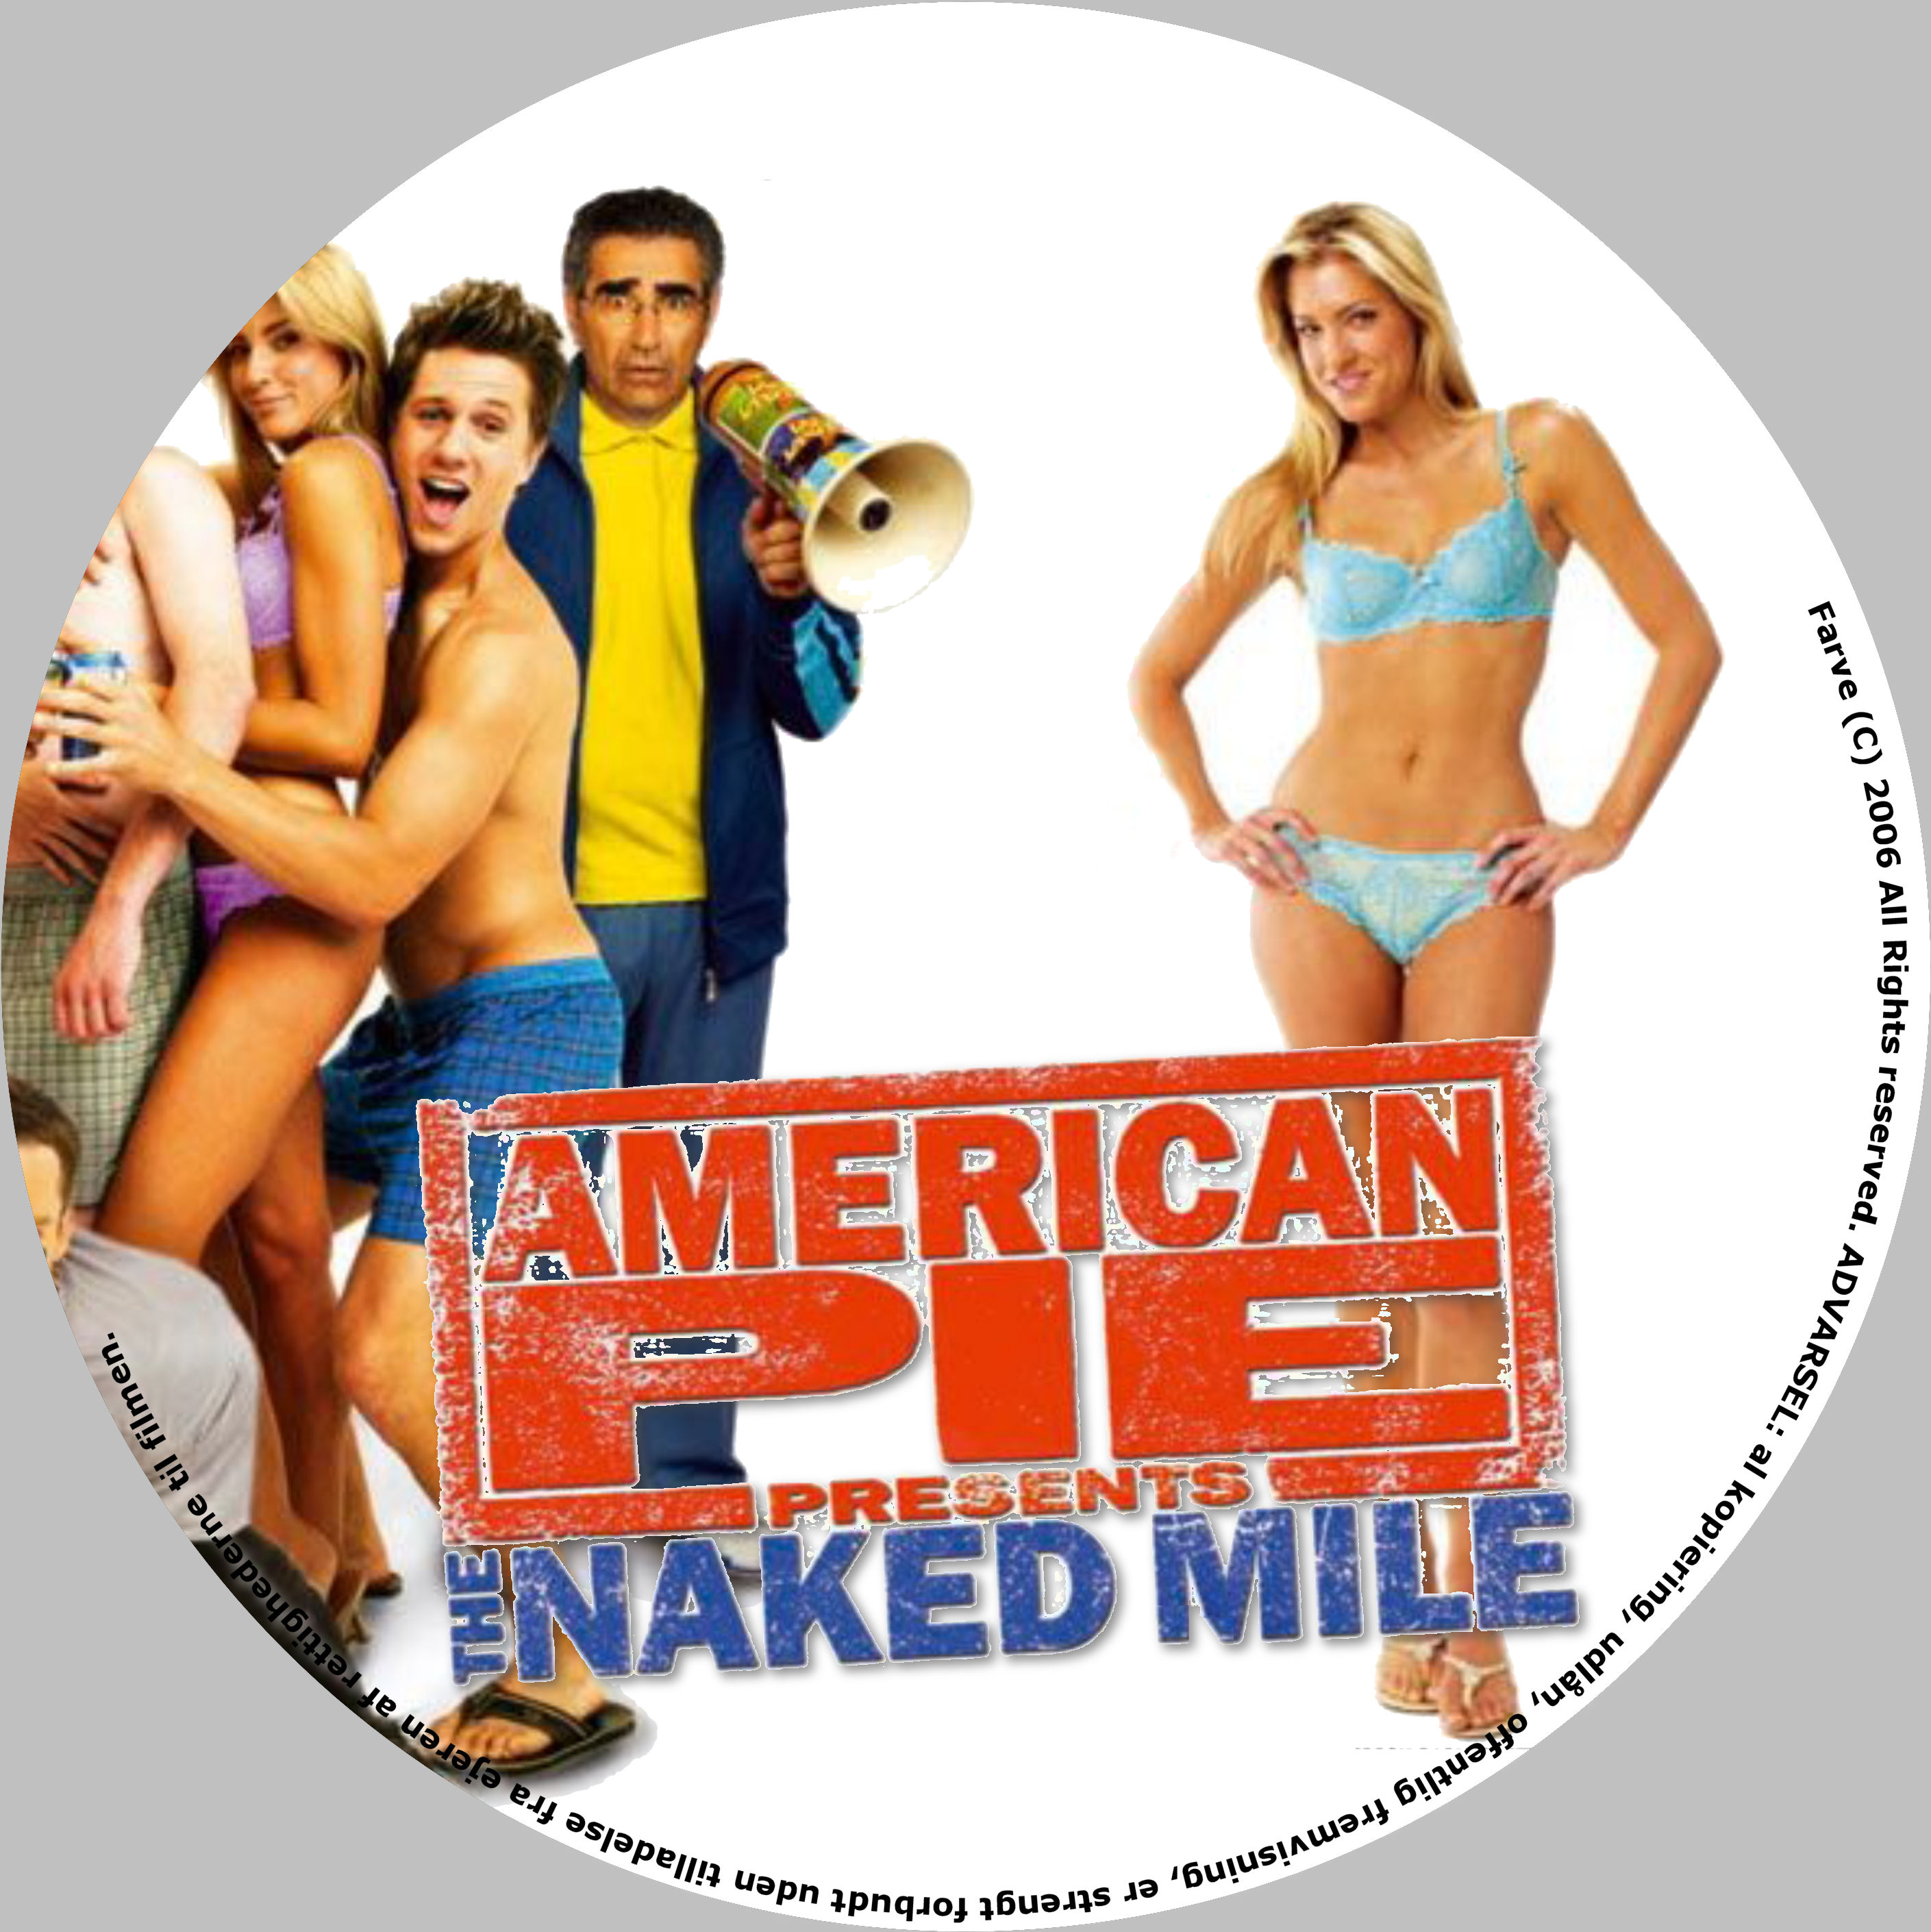 American the naked mile